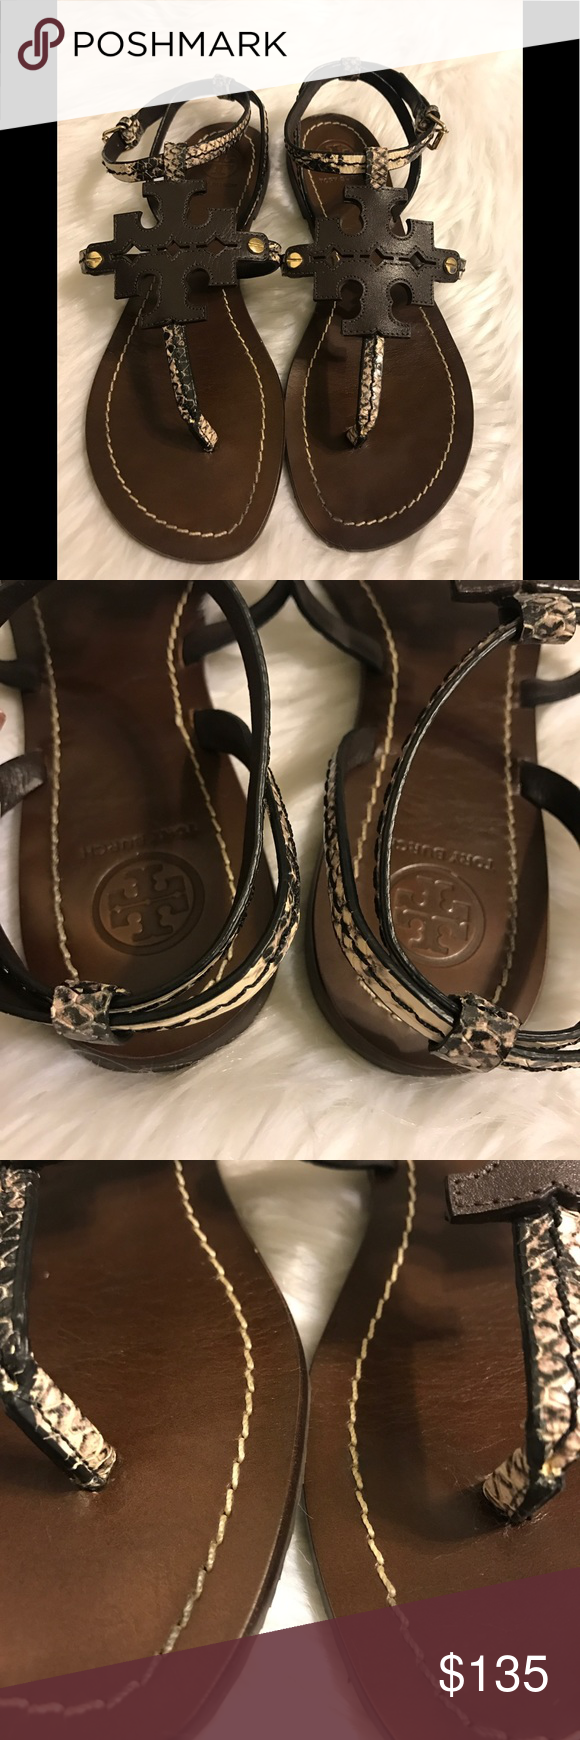 1c3ec81c0 Tory Burch Phoebe Snake- Embossed Flat Sandals Tory Burch brown phoebe  sandals used but still